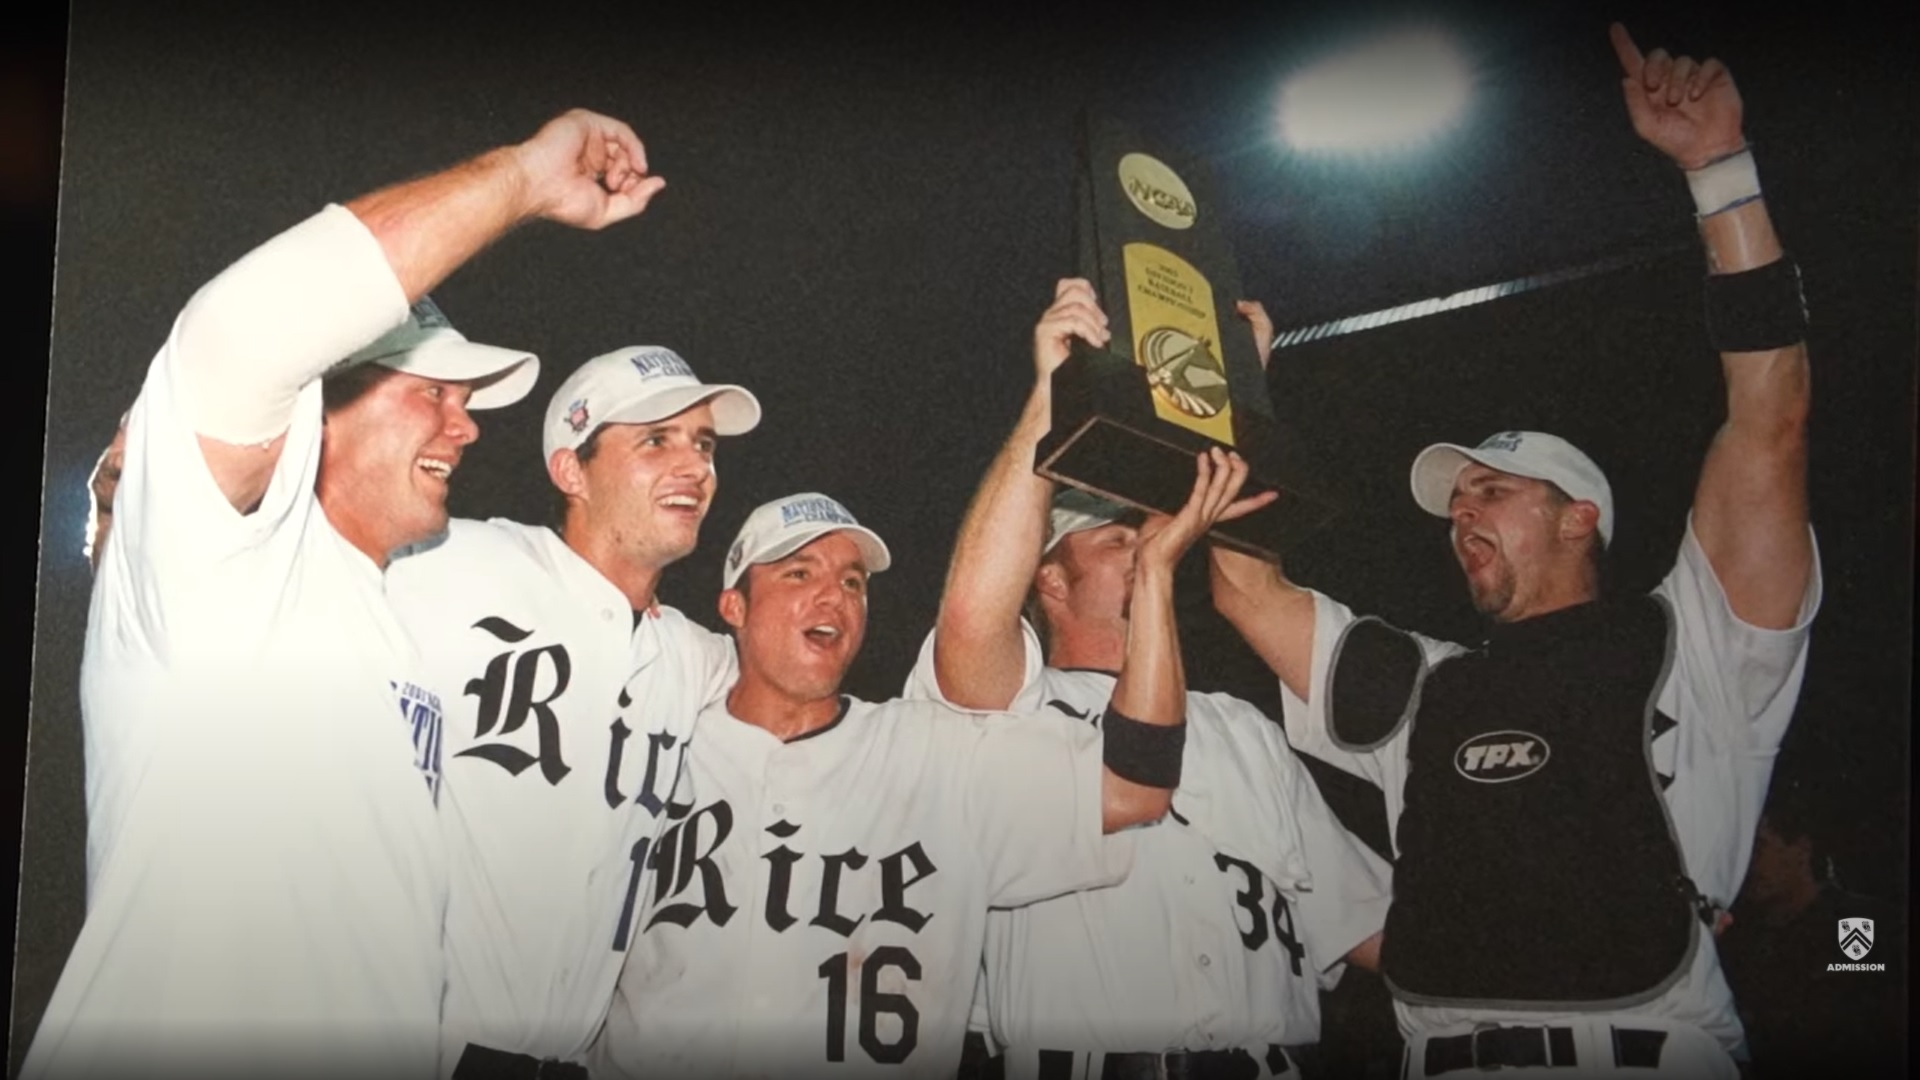 Photo depicting Rice baseball players holding up a trophy after winning.